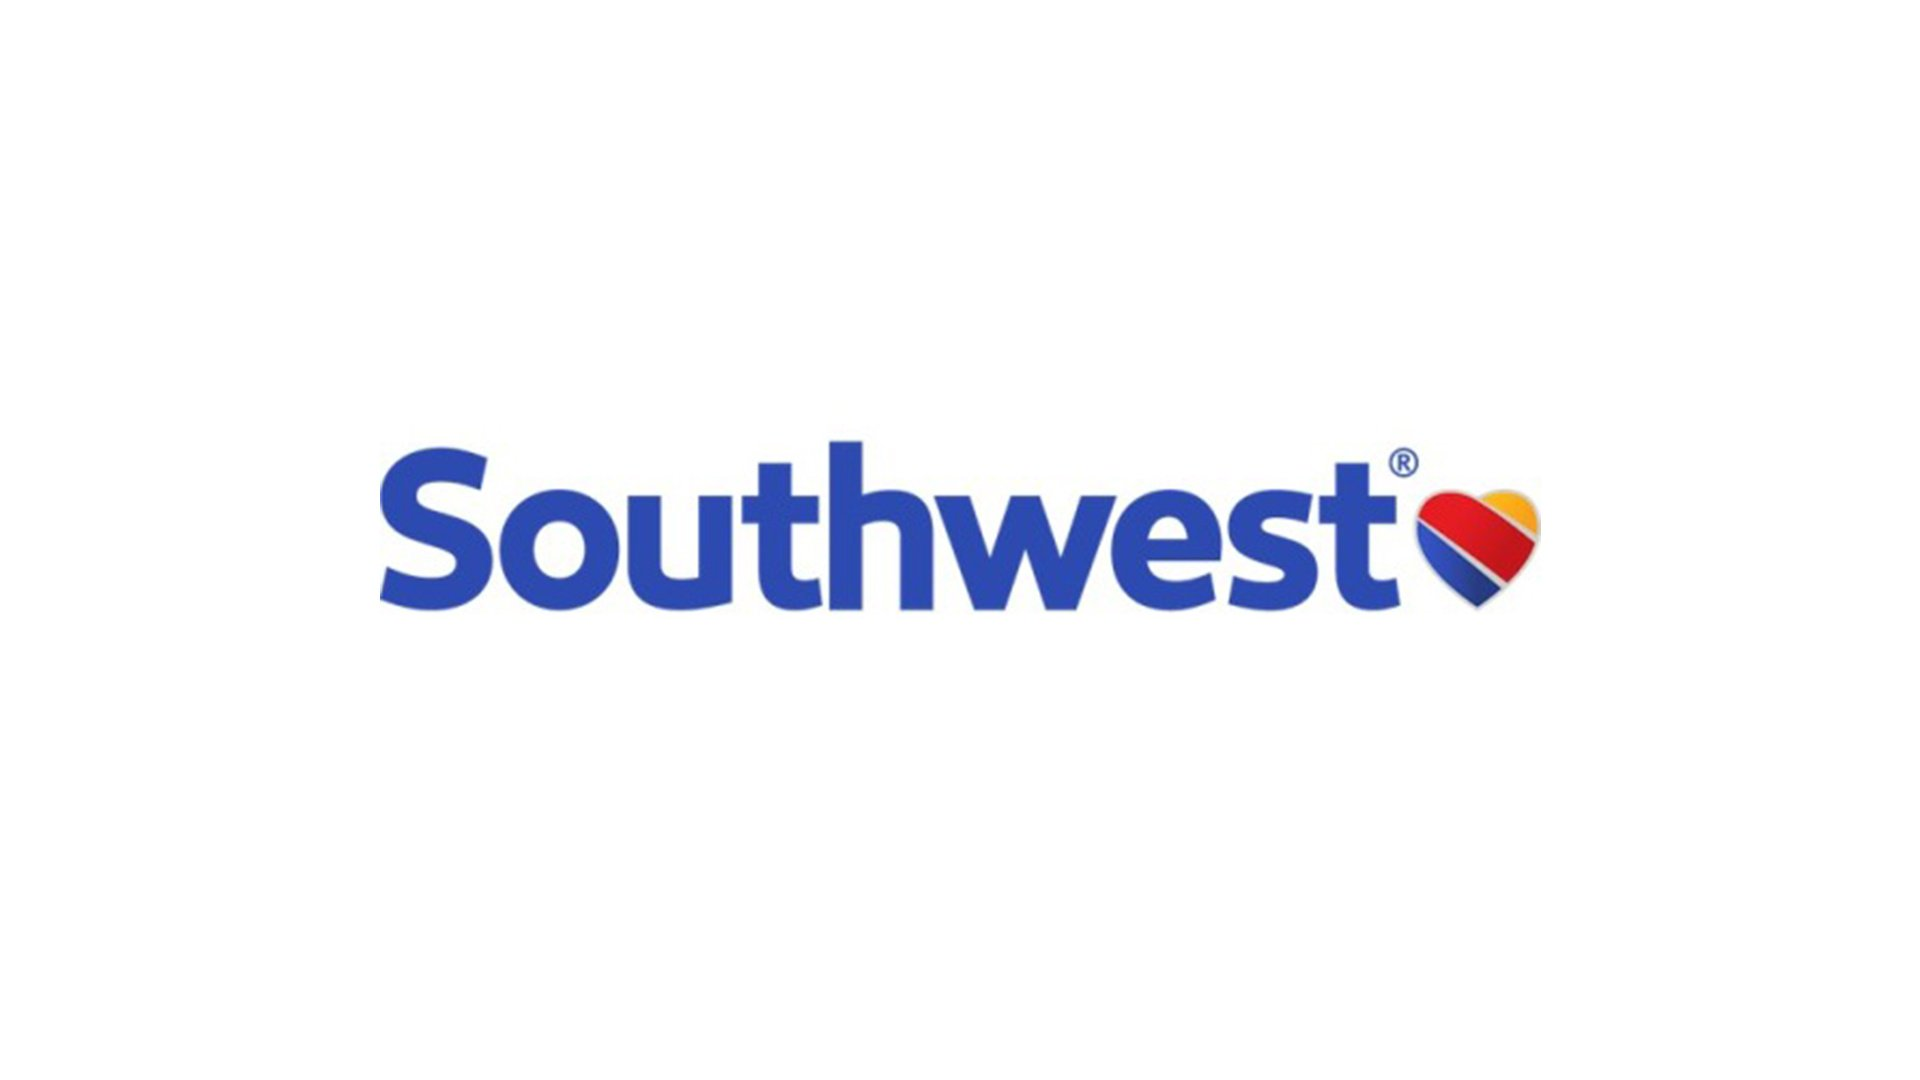 Content Marketing All-Stars Q&A: Brooks Thomas of Southwest Airlines